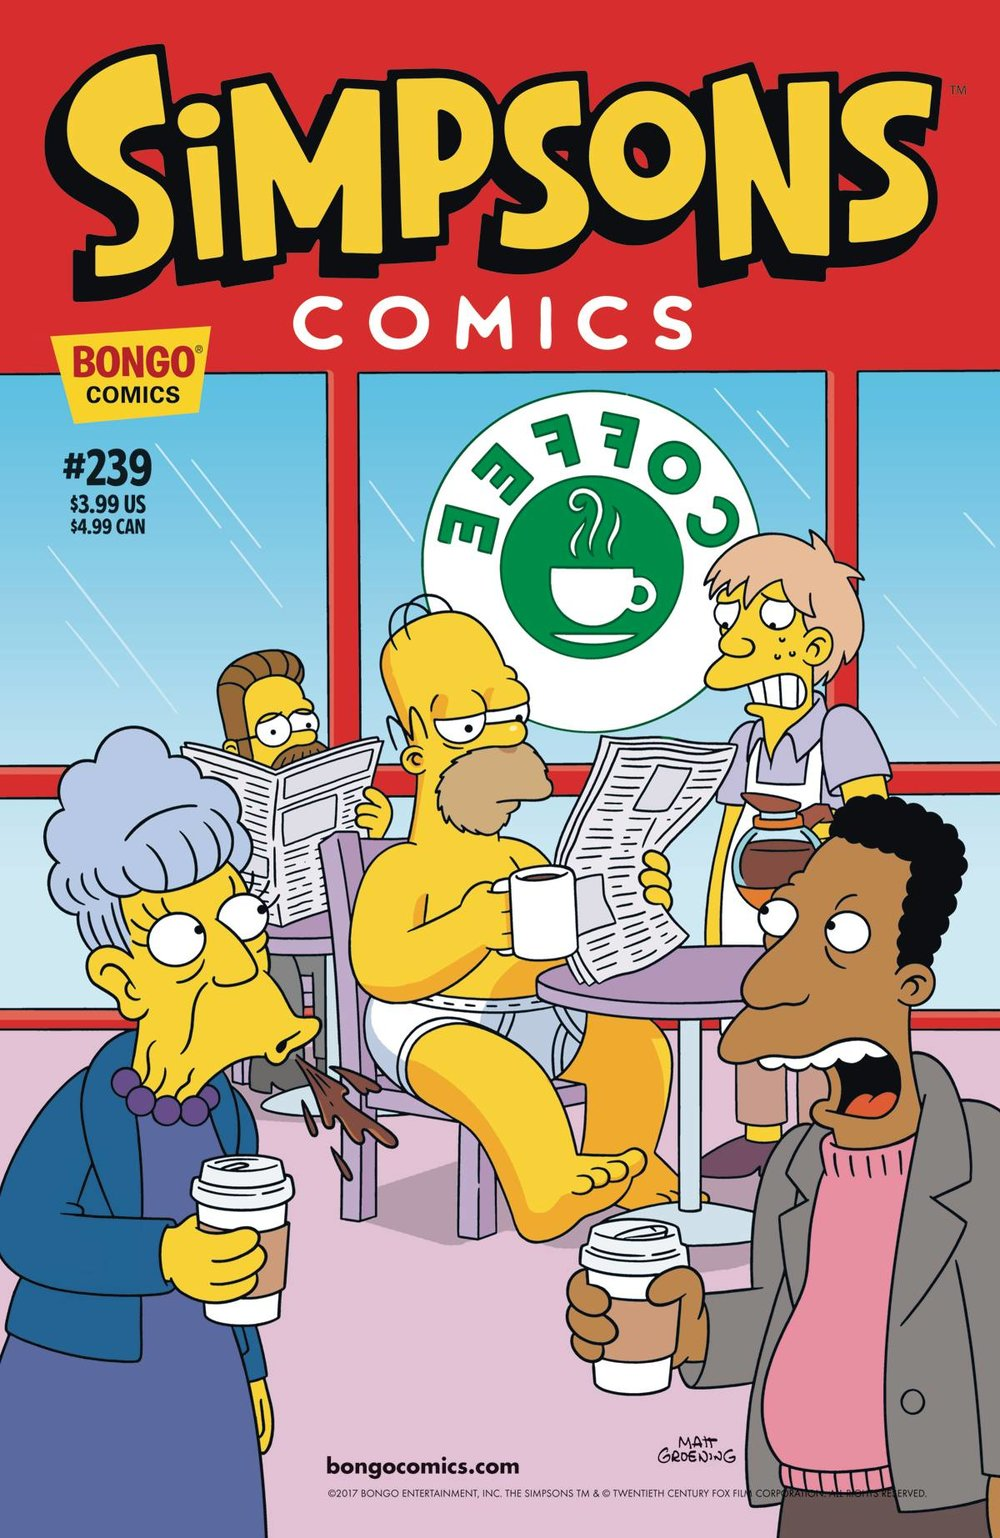 SIMPSONS COMICS 239.jpg